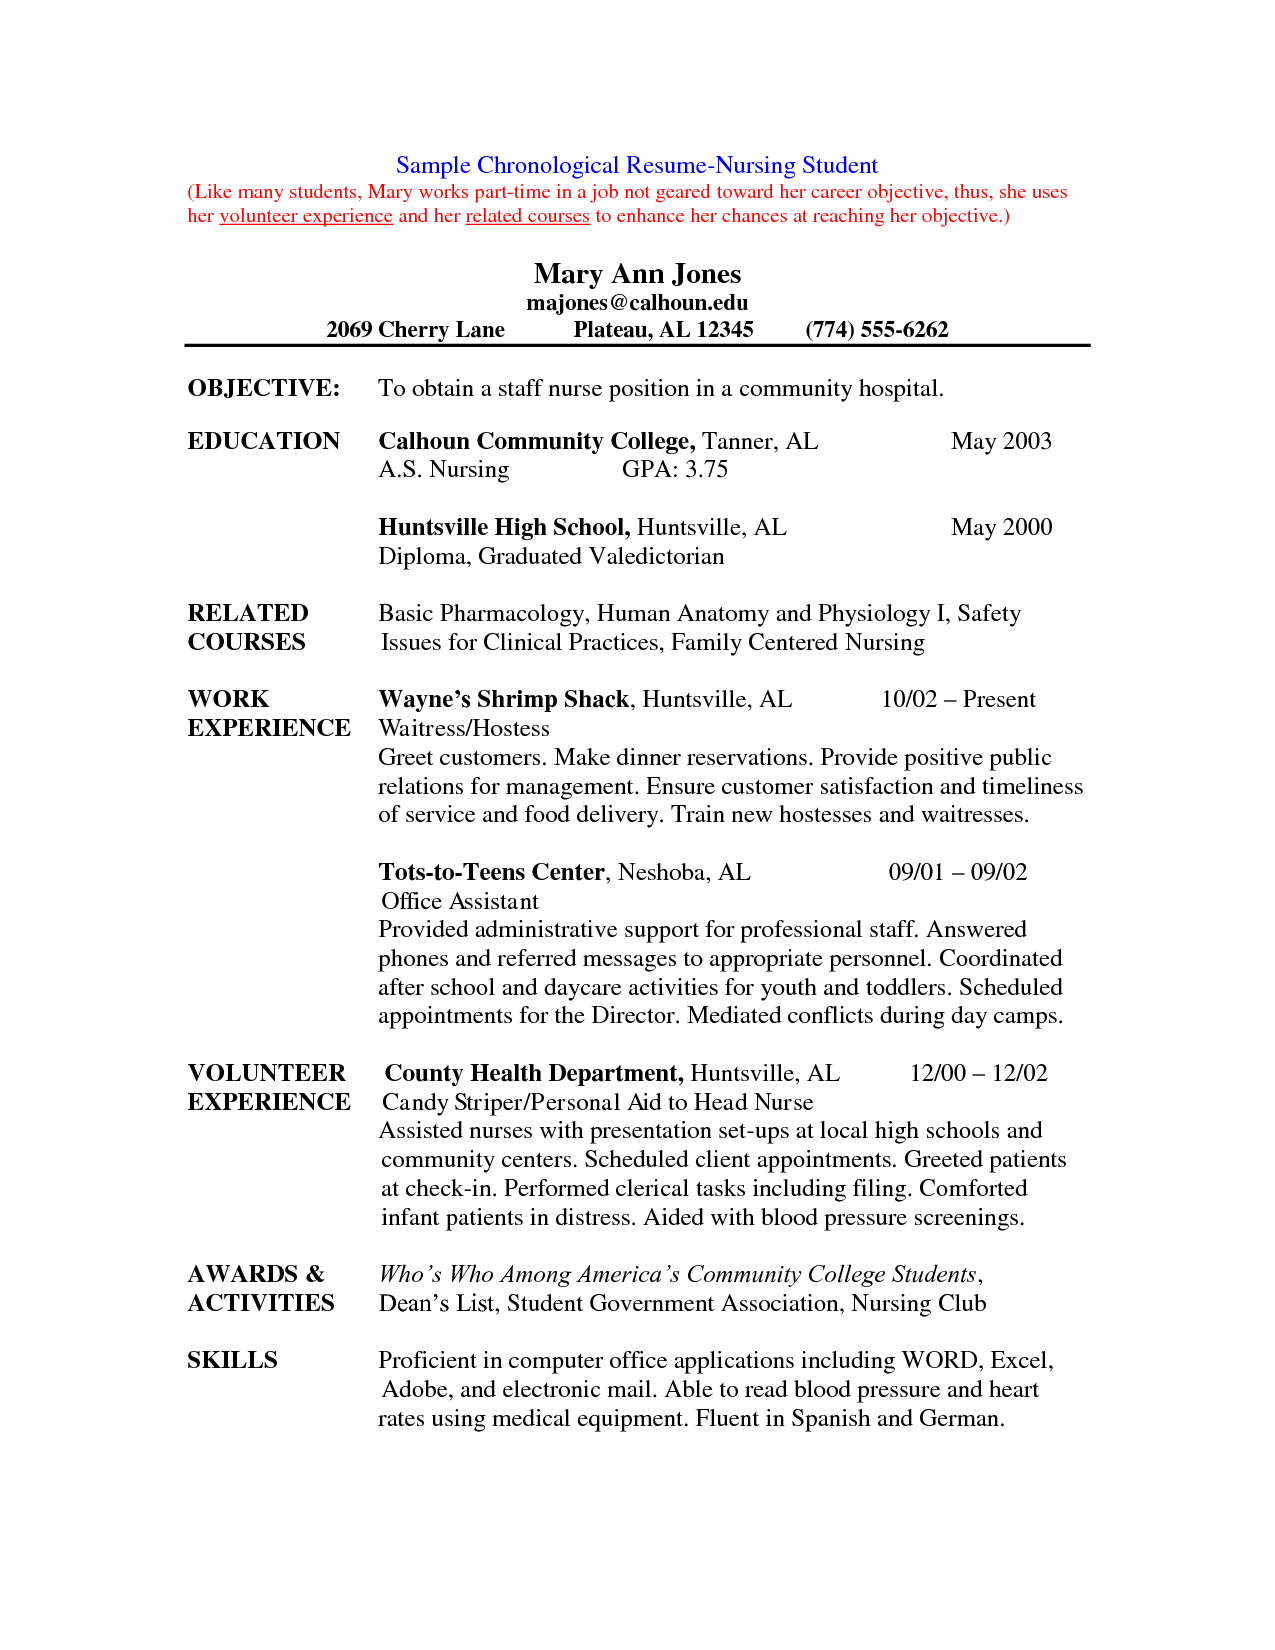 nursing student resume template hdresume templates cover letter examples - Example Student Resume